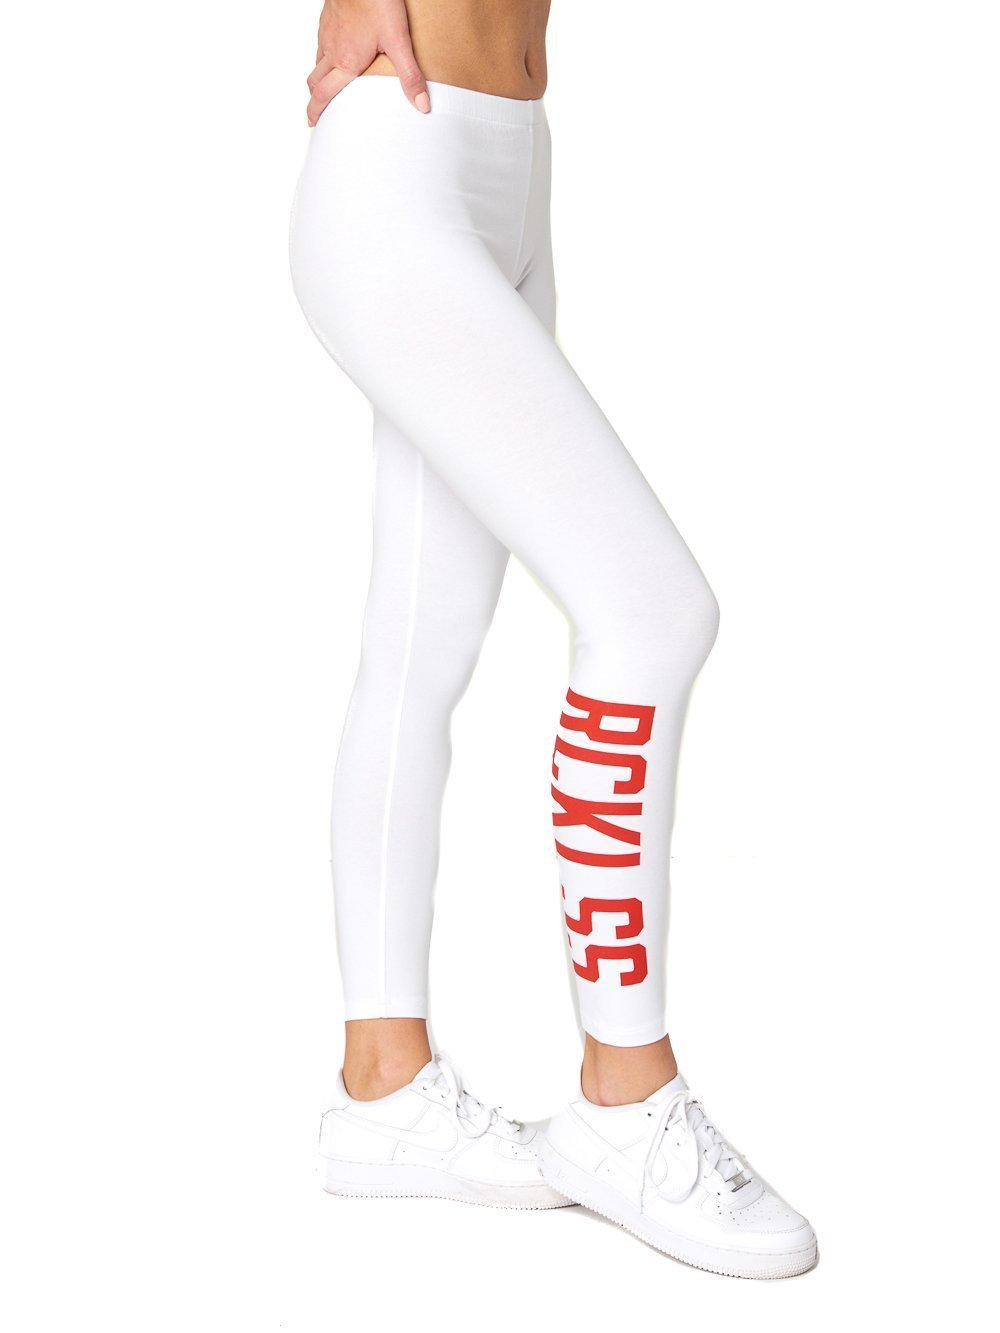 Young and Reckless - Adalynn Leggings - White - XL - Womens - Activewear - Leggings - White